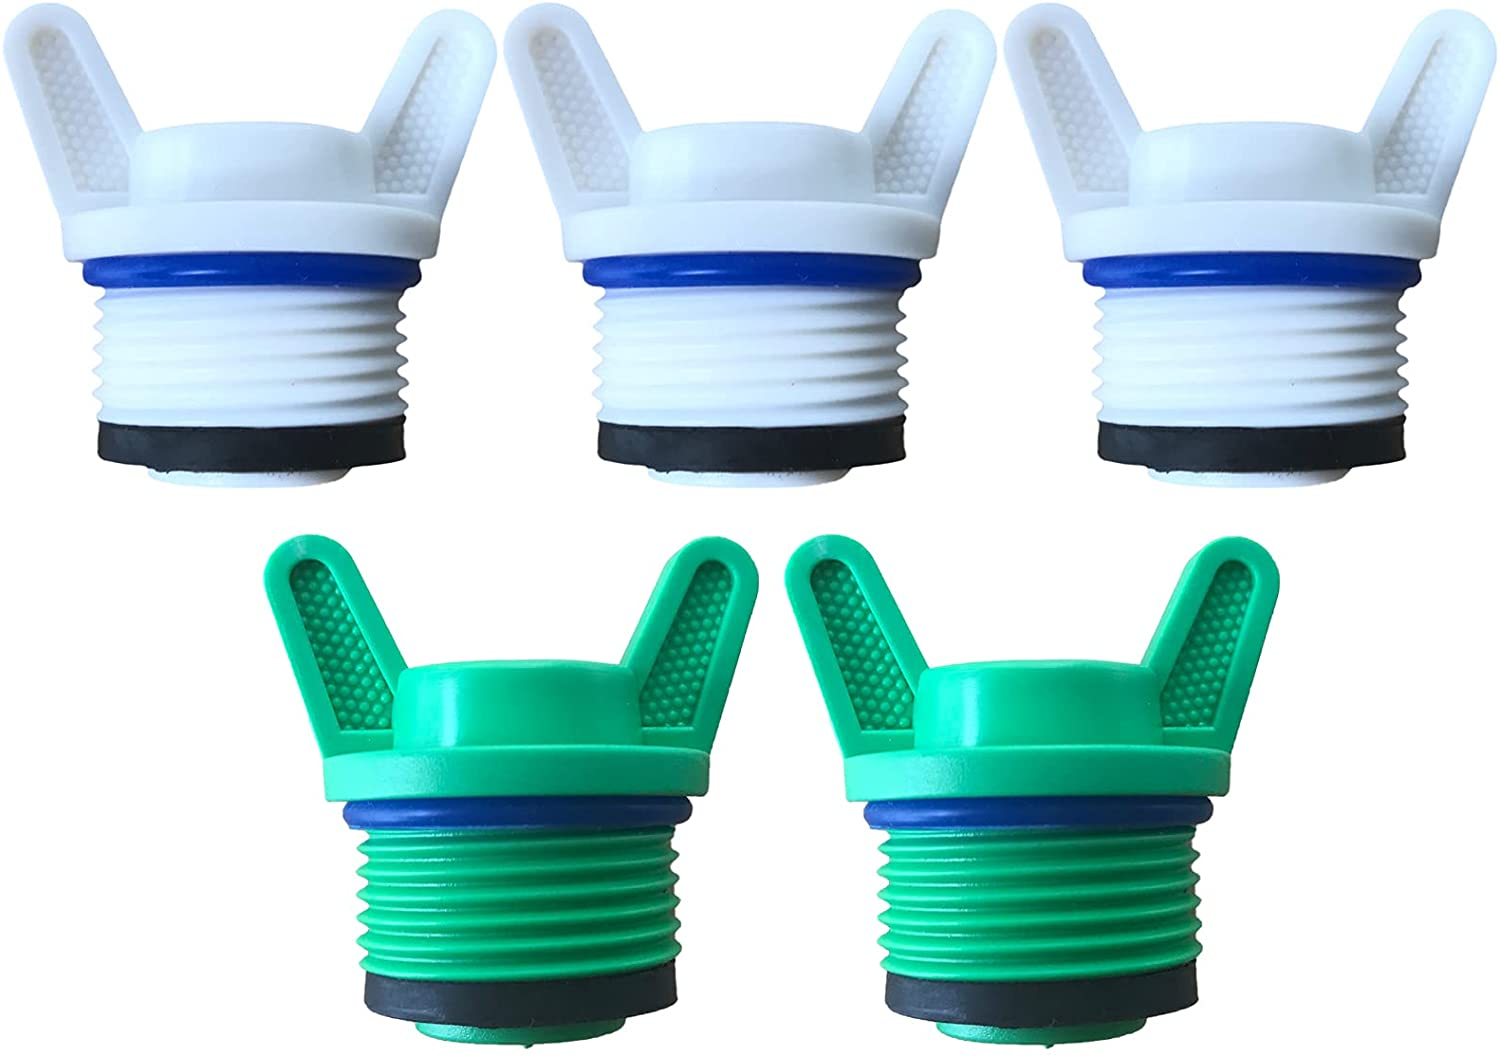 """FUATY 3/4"""" NPT Plug, Male Thread PPR Pipe Plugs and Caps Garden Irrigation Tubing Stopper Drain Plug Compatible with RV Irrigation Water Supply Lines"""